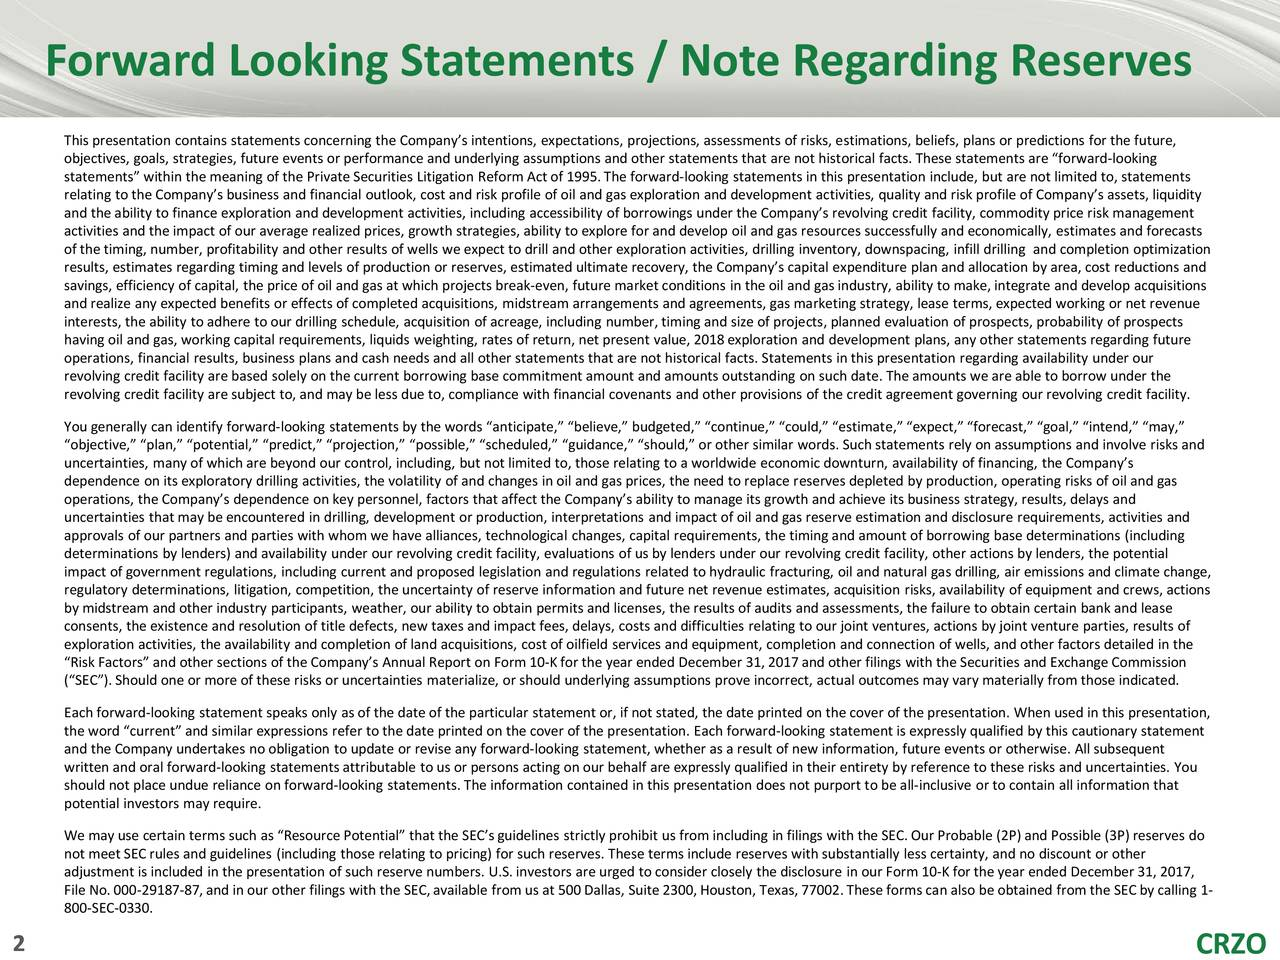 """This presentation contains statements concerning the Company's intentions, expectations, projections, assessments of risks, estimations, beliefs, plans or predictions for the future, objectives, goals, strategies, future events or performance and underlying assumptions and other statements that are not historical facts. These statements are """"forward-looking statements"""" within the meaning of the Private Securities Litigation Reform Act of 1995.The forward-looking statements in this presentation include, but are not limited to, statements relating to the Company's business and financial outlook, cost and risk profile of oil and gas exploration and development activities, quality and risk profile of Company's assets, liquidity and theability tofinance exploration and development activities, including accessibility of borrowings under the Company's revolving credit facility, commodity price risk management activities and the impact of our average realized prices, growth strategies, ability to explore for and develop oil and gas resources successfully and economically, estimates and forecasts of the timing, number, profitability and other results of wells we expect to drill and other exploration activities, drillinginventory, downspacing, infill drilling and completion optimization results, estimates regarding timing and levels of production or reserves, estimated ultimate recovery, the Company's capitalexpenditure plan and allocation by area, cost reductions and savings, efficiency of capital, the price of oil and gas at which projects break-even, future market conditions in the oil and gas industry, ability tomake,integrate and develop acquisitions and realize any expected benefits or effects of completed acquisitions, midstream arrangements and agreements, gas marketing strategy, lease terms, expected working or net revenue interests, the ability to adhere to our drilling schedule, acquisition of acreage, including number, timing and size of projects, planned evaluati"""